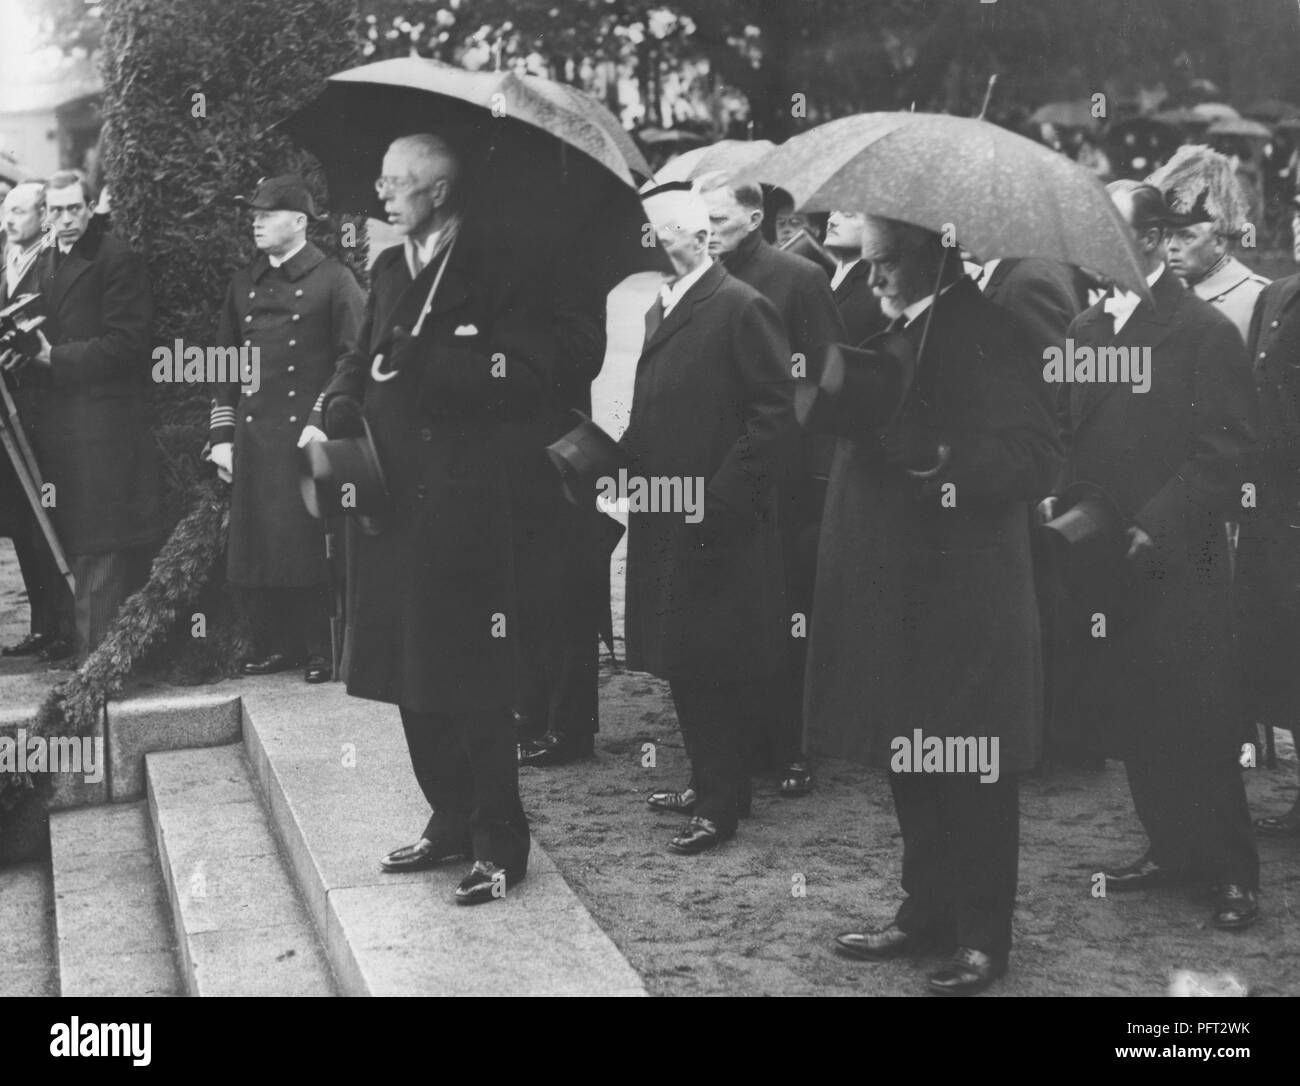 King Gustaf V of Sweden. Pictured here in the rain under an umbrella at the port of Stockholm waiting for the ship M/S Svensksund to arrive with the remains of Andrée Balloon expedition of 1897. The bodies of the members were found many years later 1930 frozen on the island of Kvitøya on the Svalbard archipelago. 1930 - Stock Image